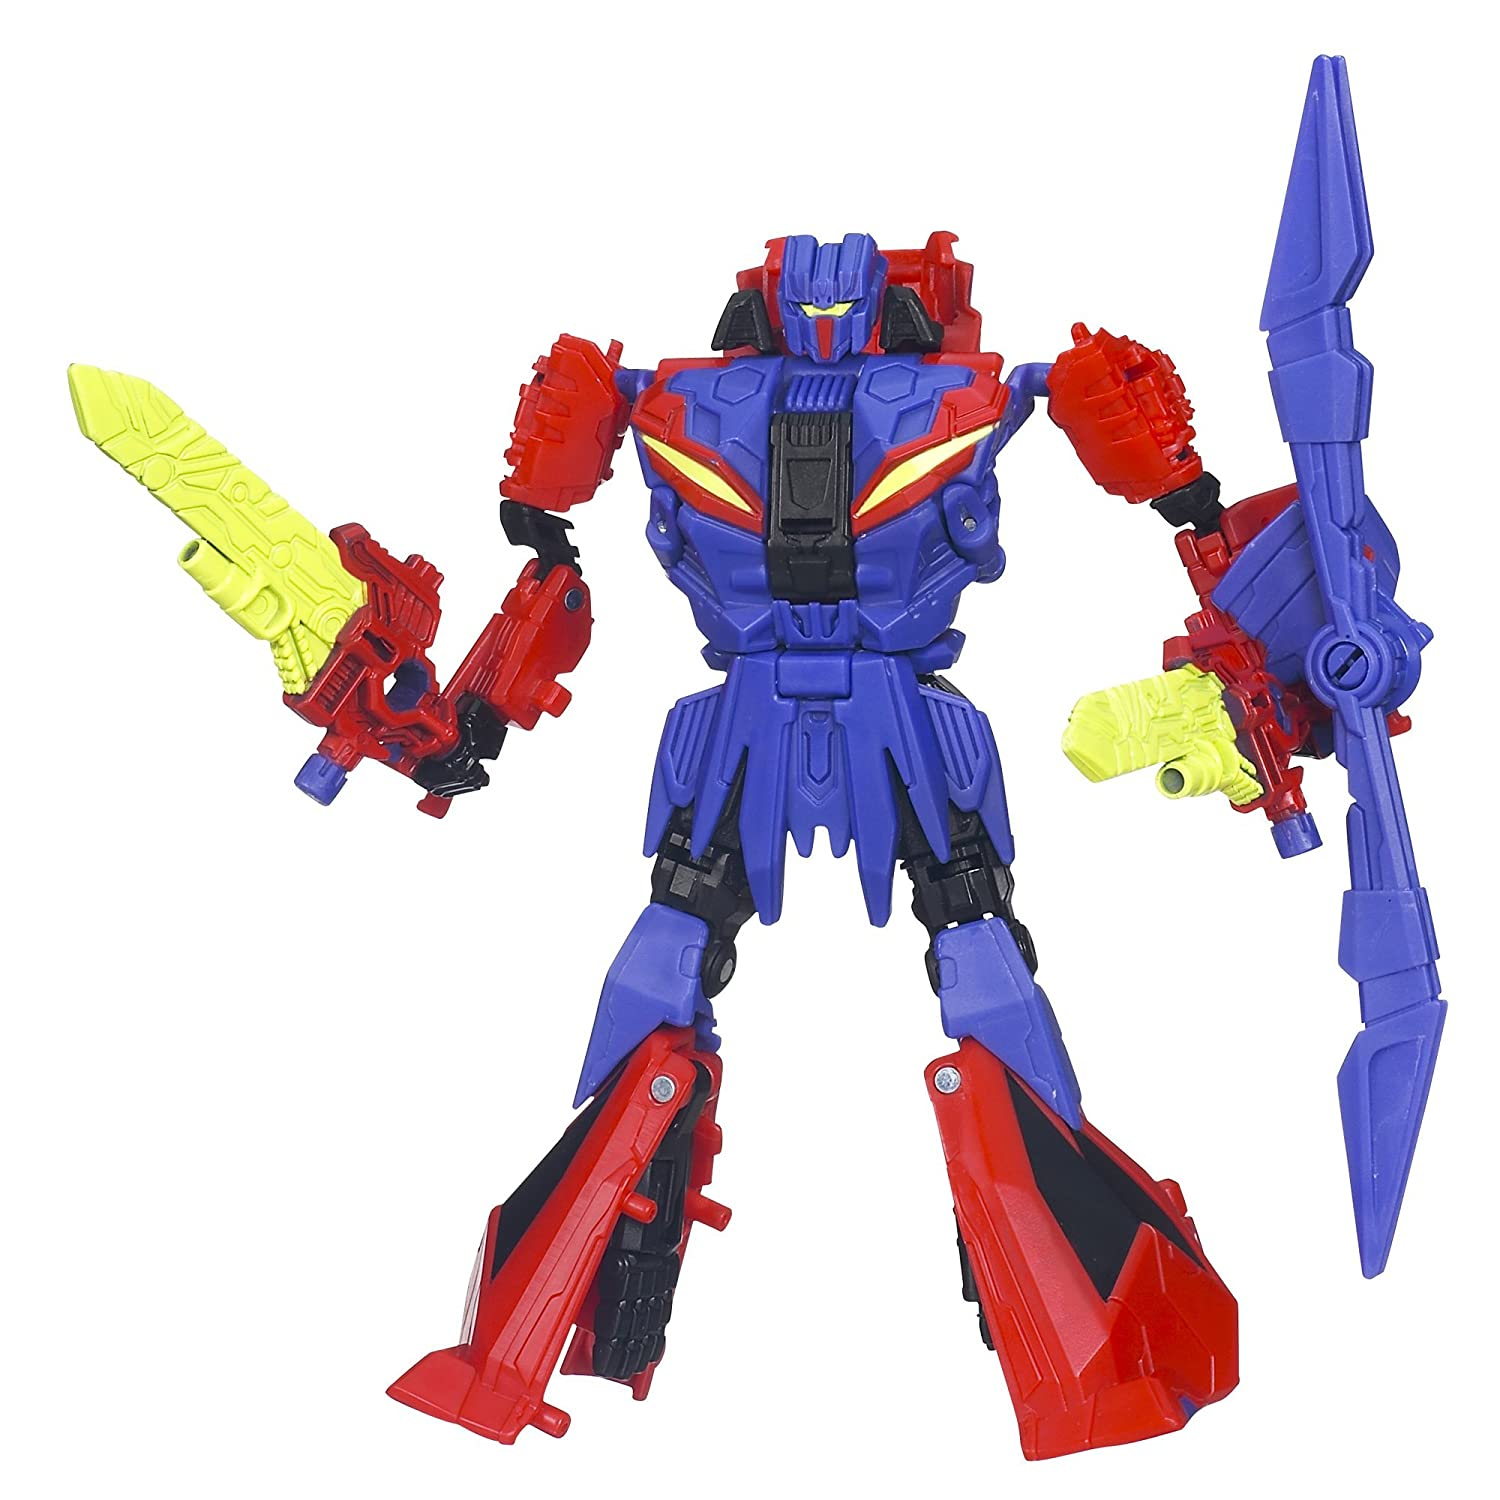 Transformers Generations Deluxe VORTEX Fall of Cybertron als Geschenk